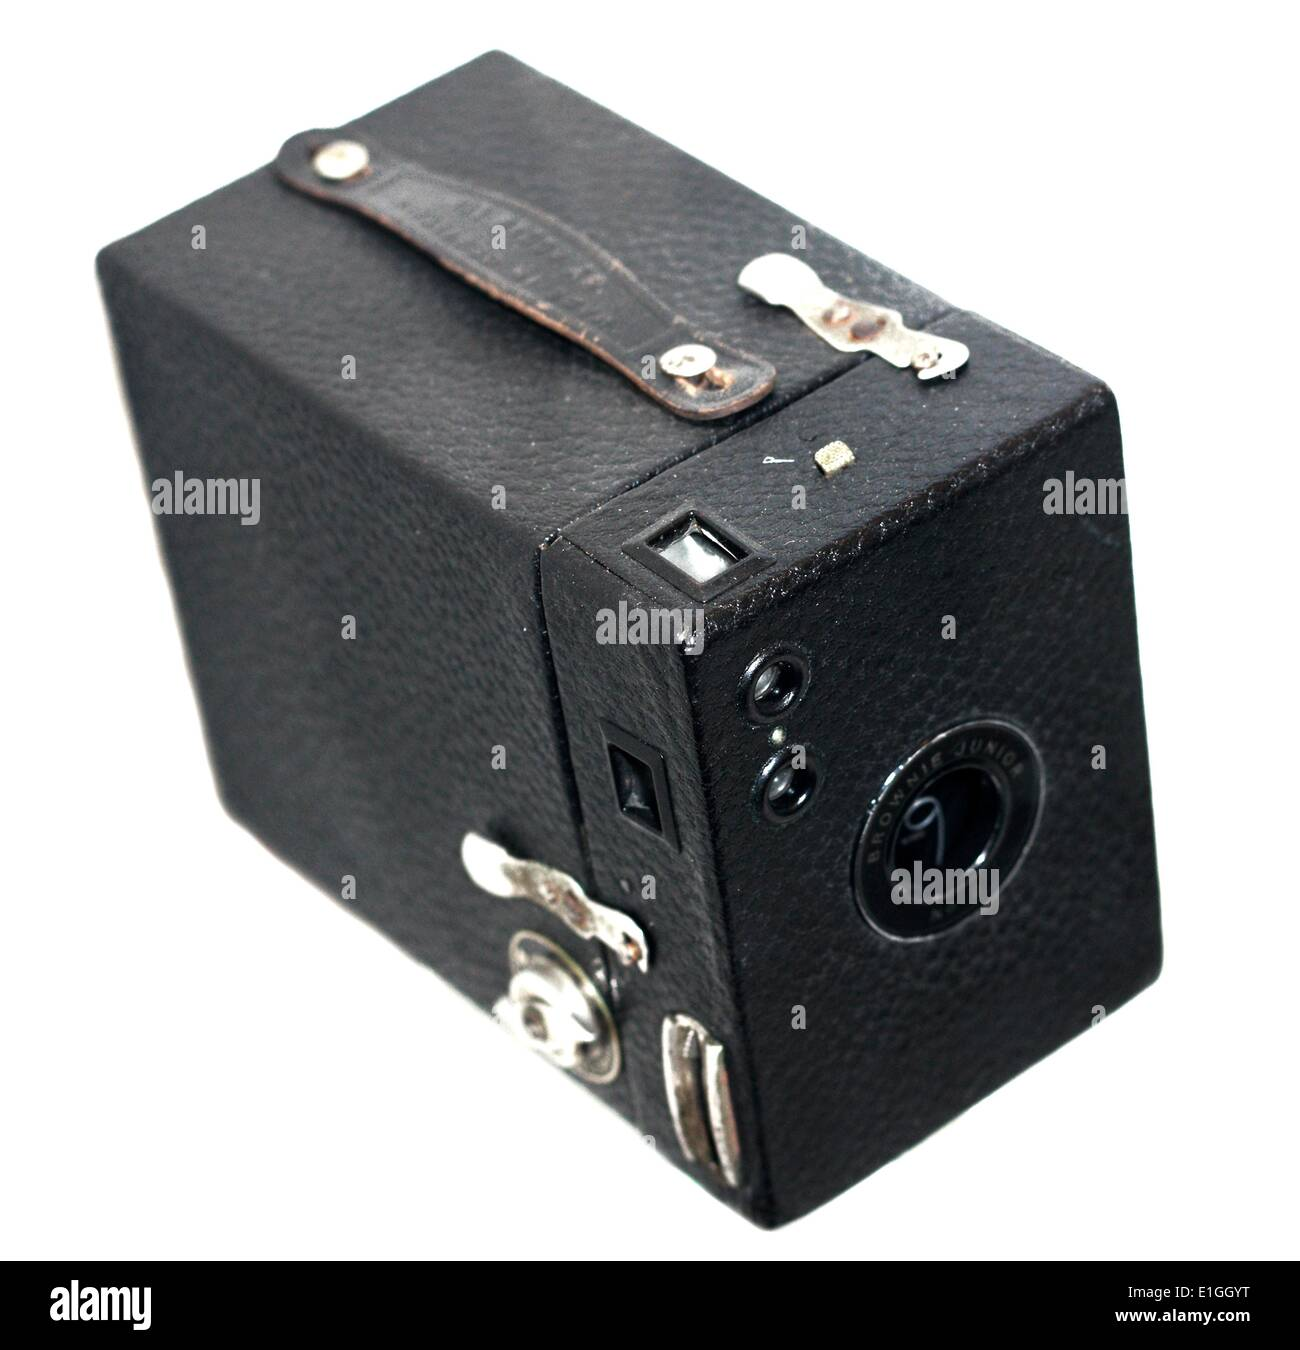 Kodak Brownie Junior No 2 Camera, roll film camera, made In England in the 1930's. - Stock Image